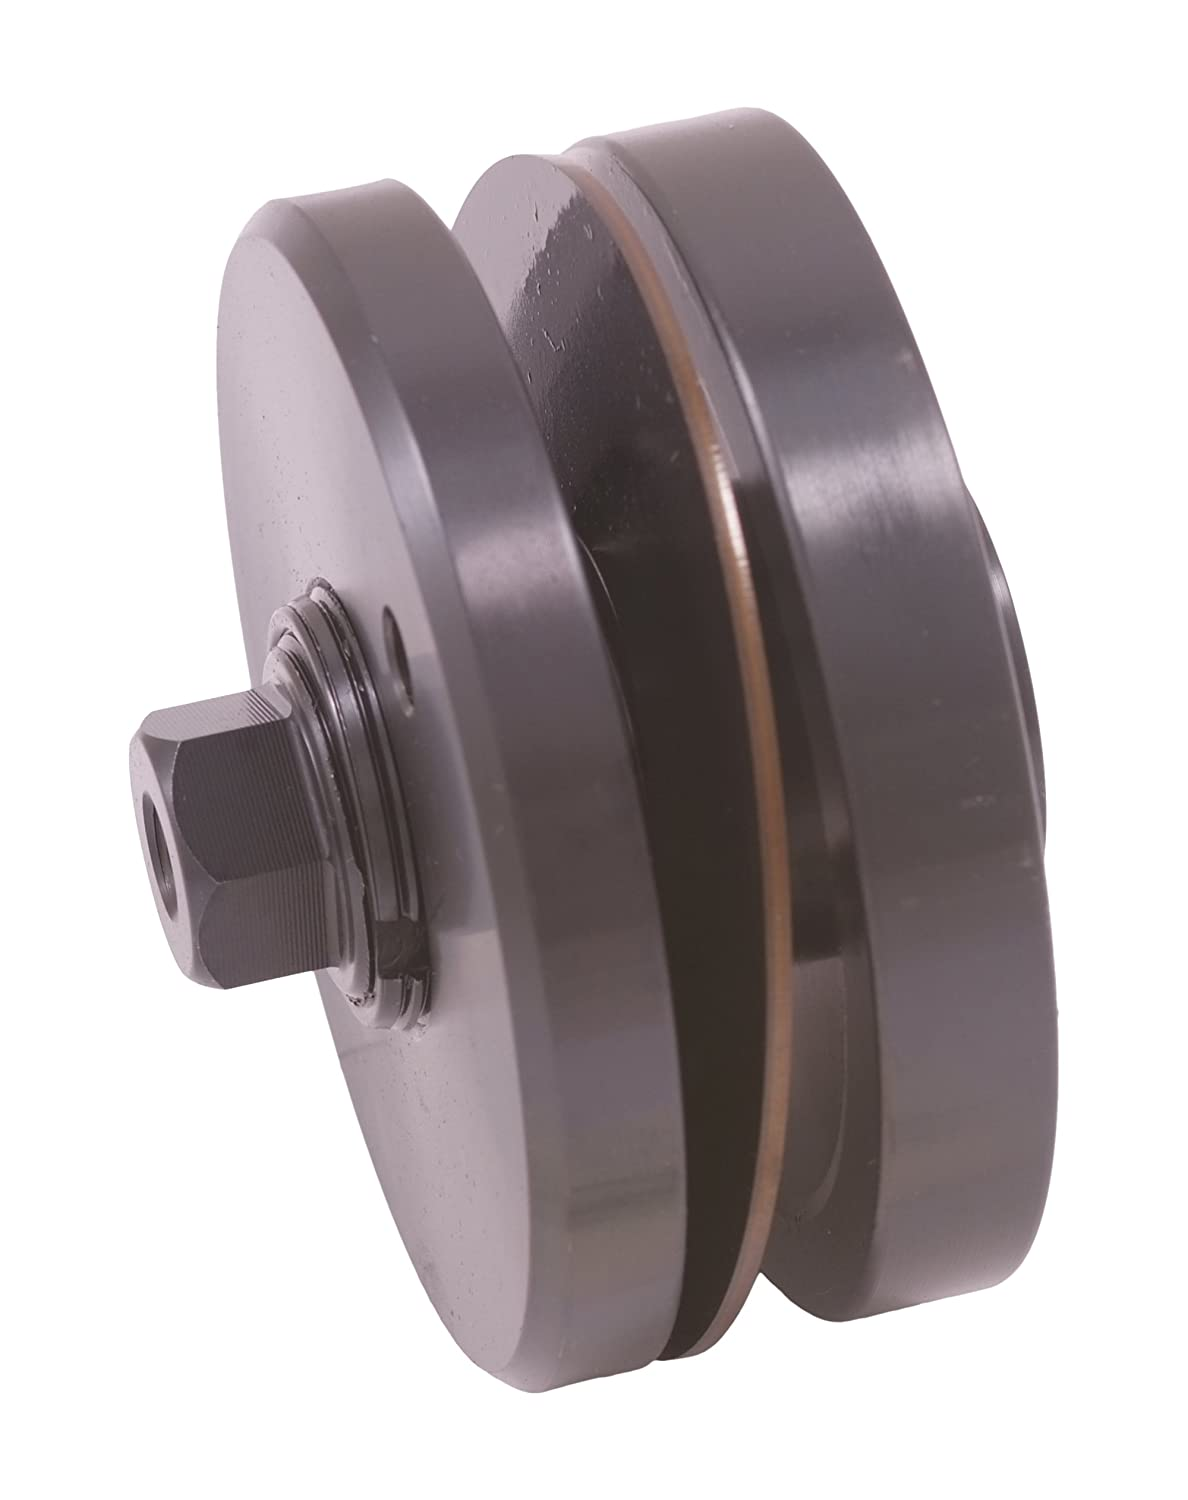 HHIP 2420-0320 F320 Grinding Wheel Adapter